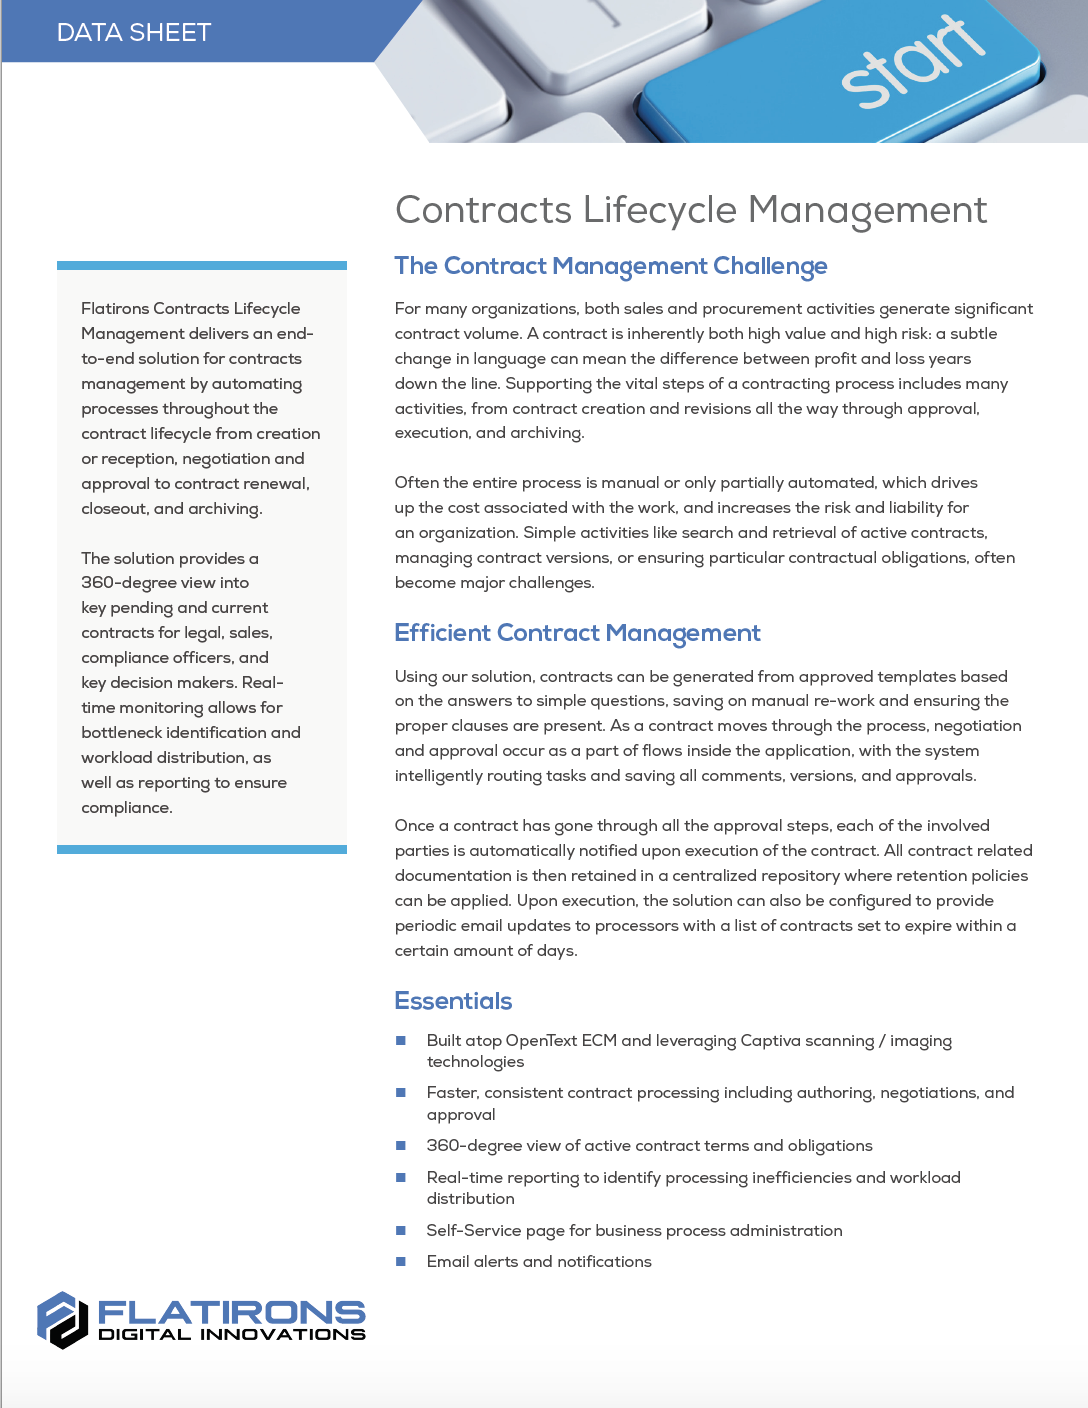 Contracts Management - Flatirons Digital Innovations